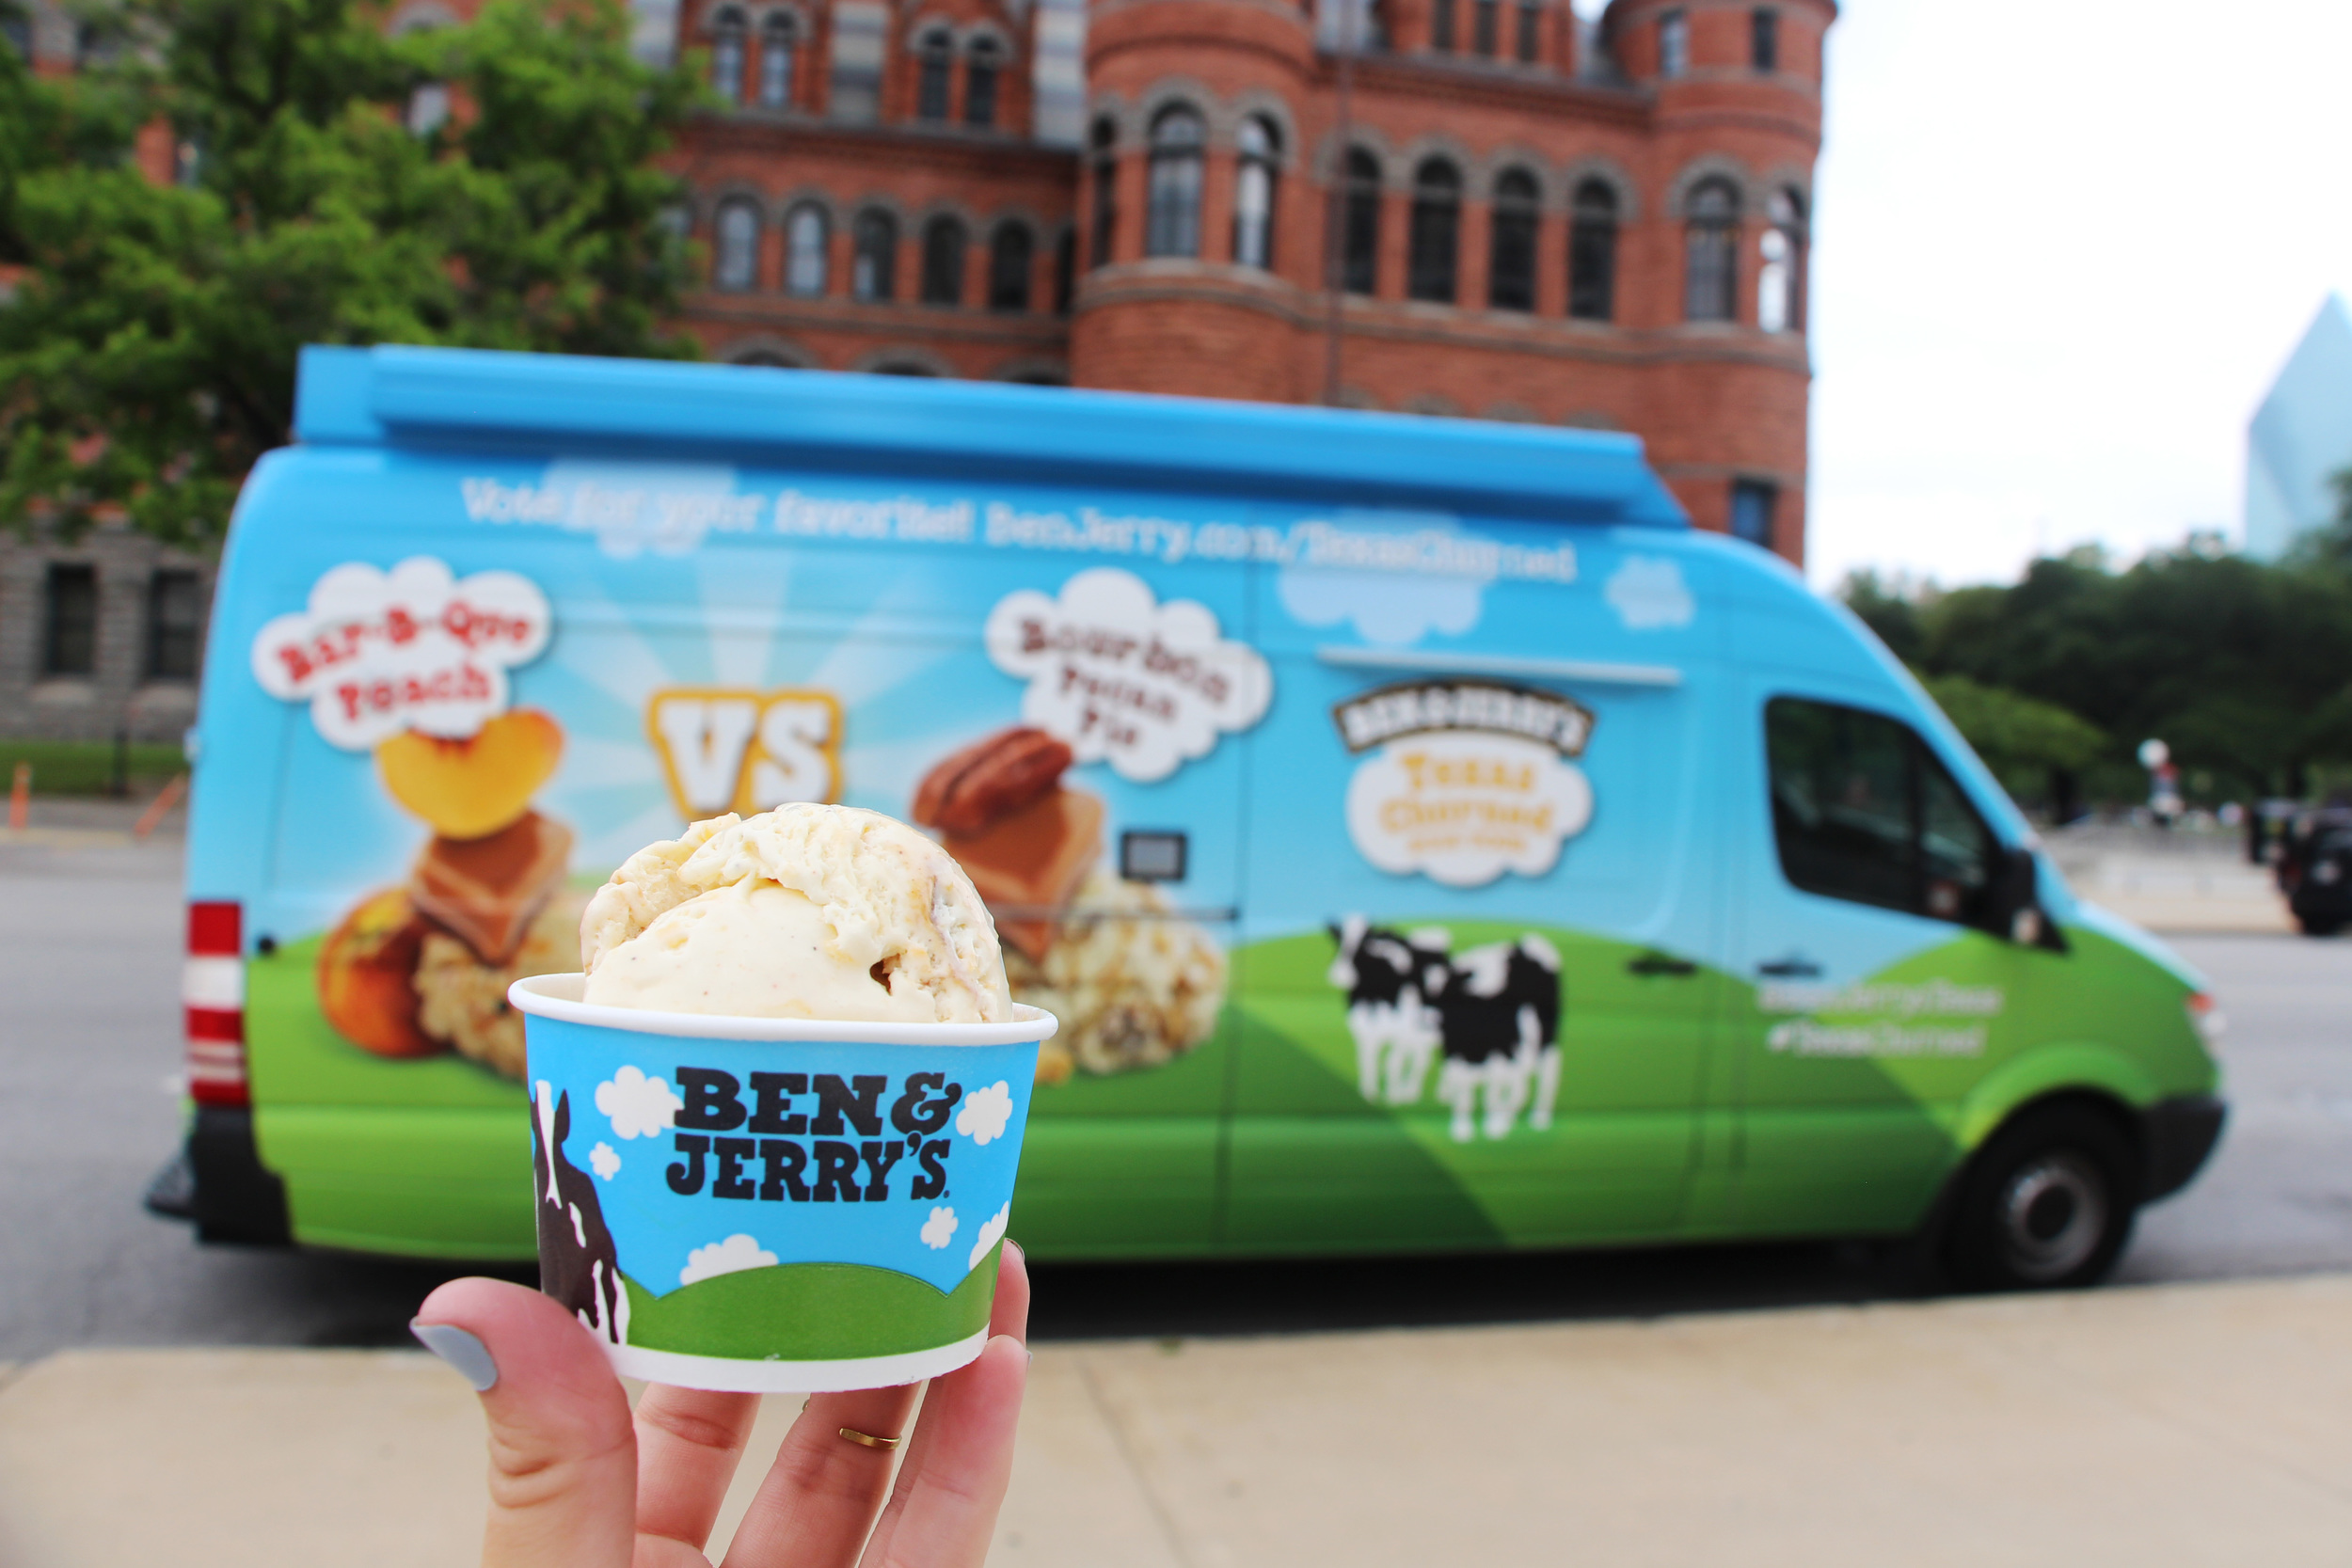 Tweet the truck using hashtag #TexasChurned to sample the dueling flavors.